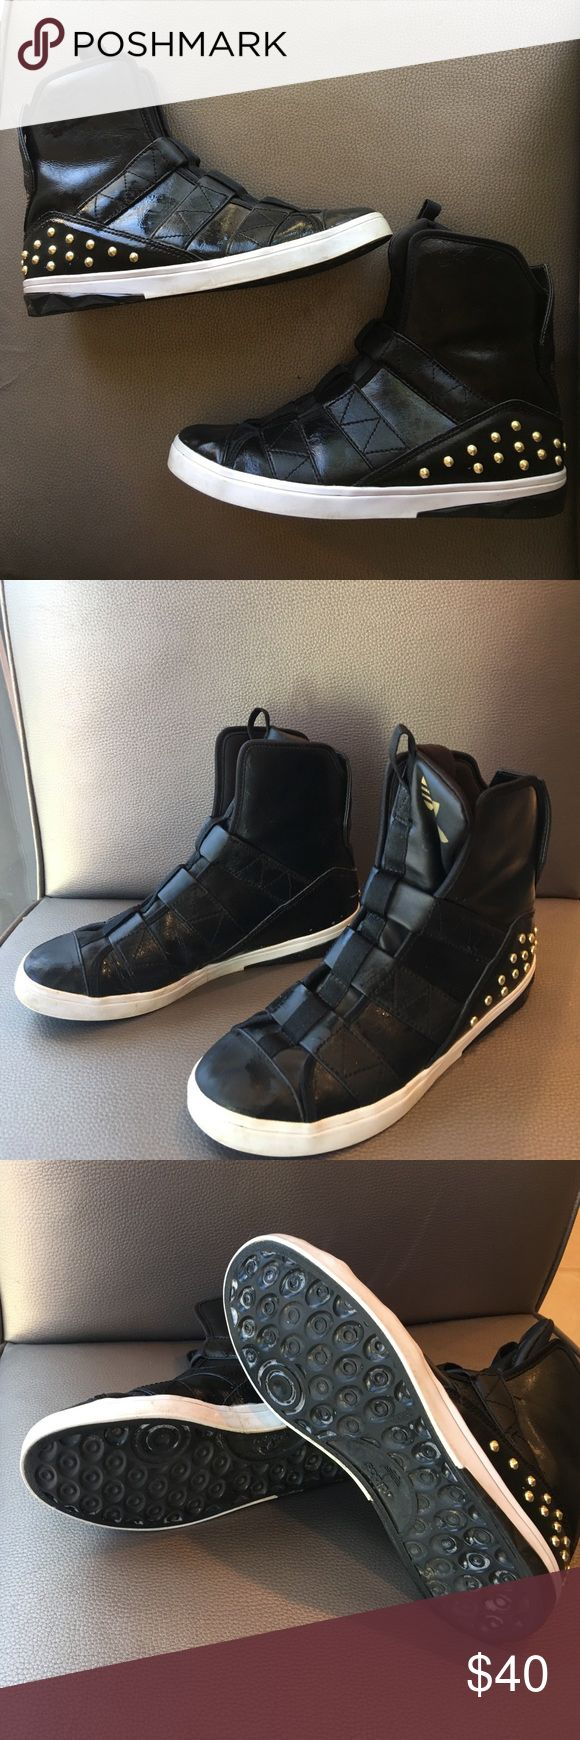 ADIDAS WOMEN'S HIGH TOP BLACK STUD SNEAKERS ADIDAS WOMEN'S HIGH TOP BLACK STUD SNEAKERS. SUPER CHIC SNEAKERS WITH GOLD STUDS AROUND THE BASE OF THE HEEL . Size 7 .GREAT CONDITION & COMFORTABLE Adidas Shoes Sneakers